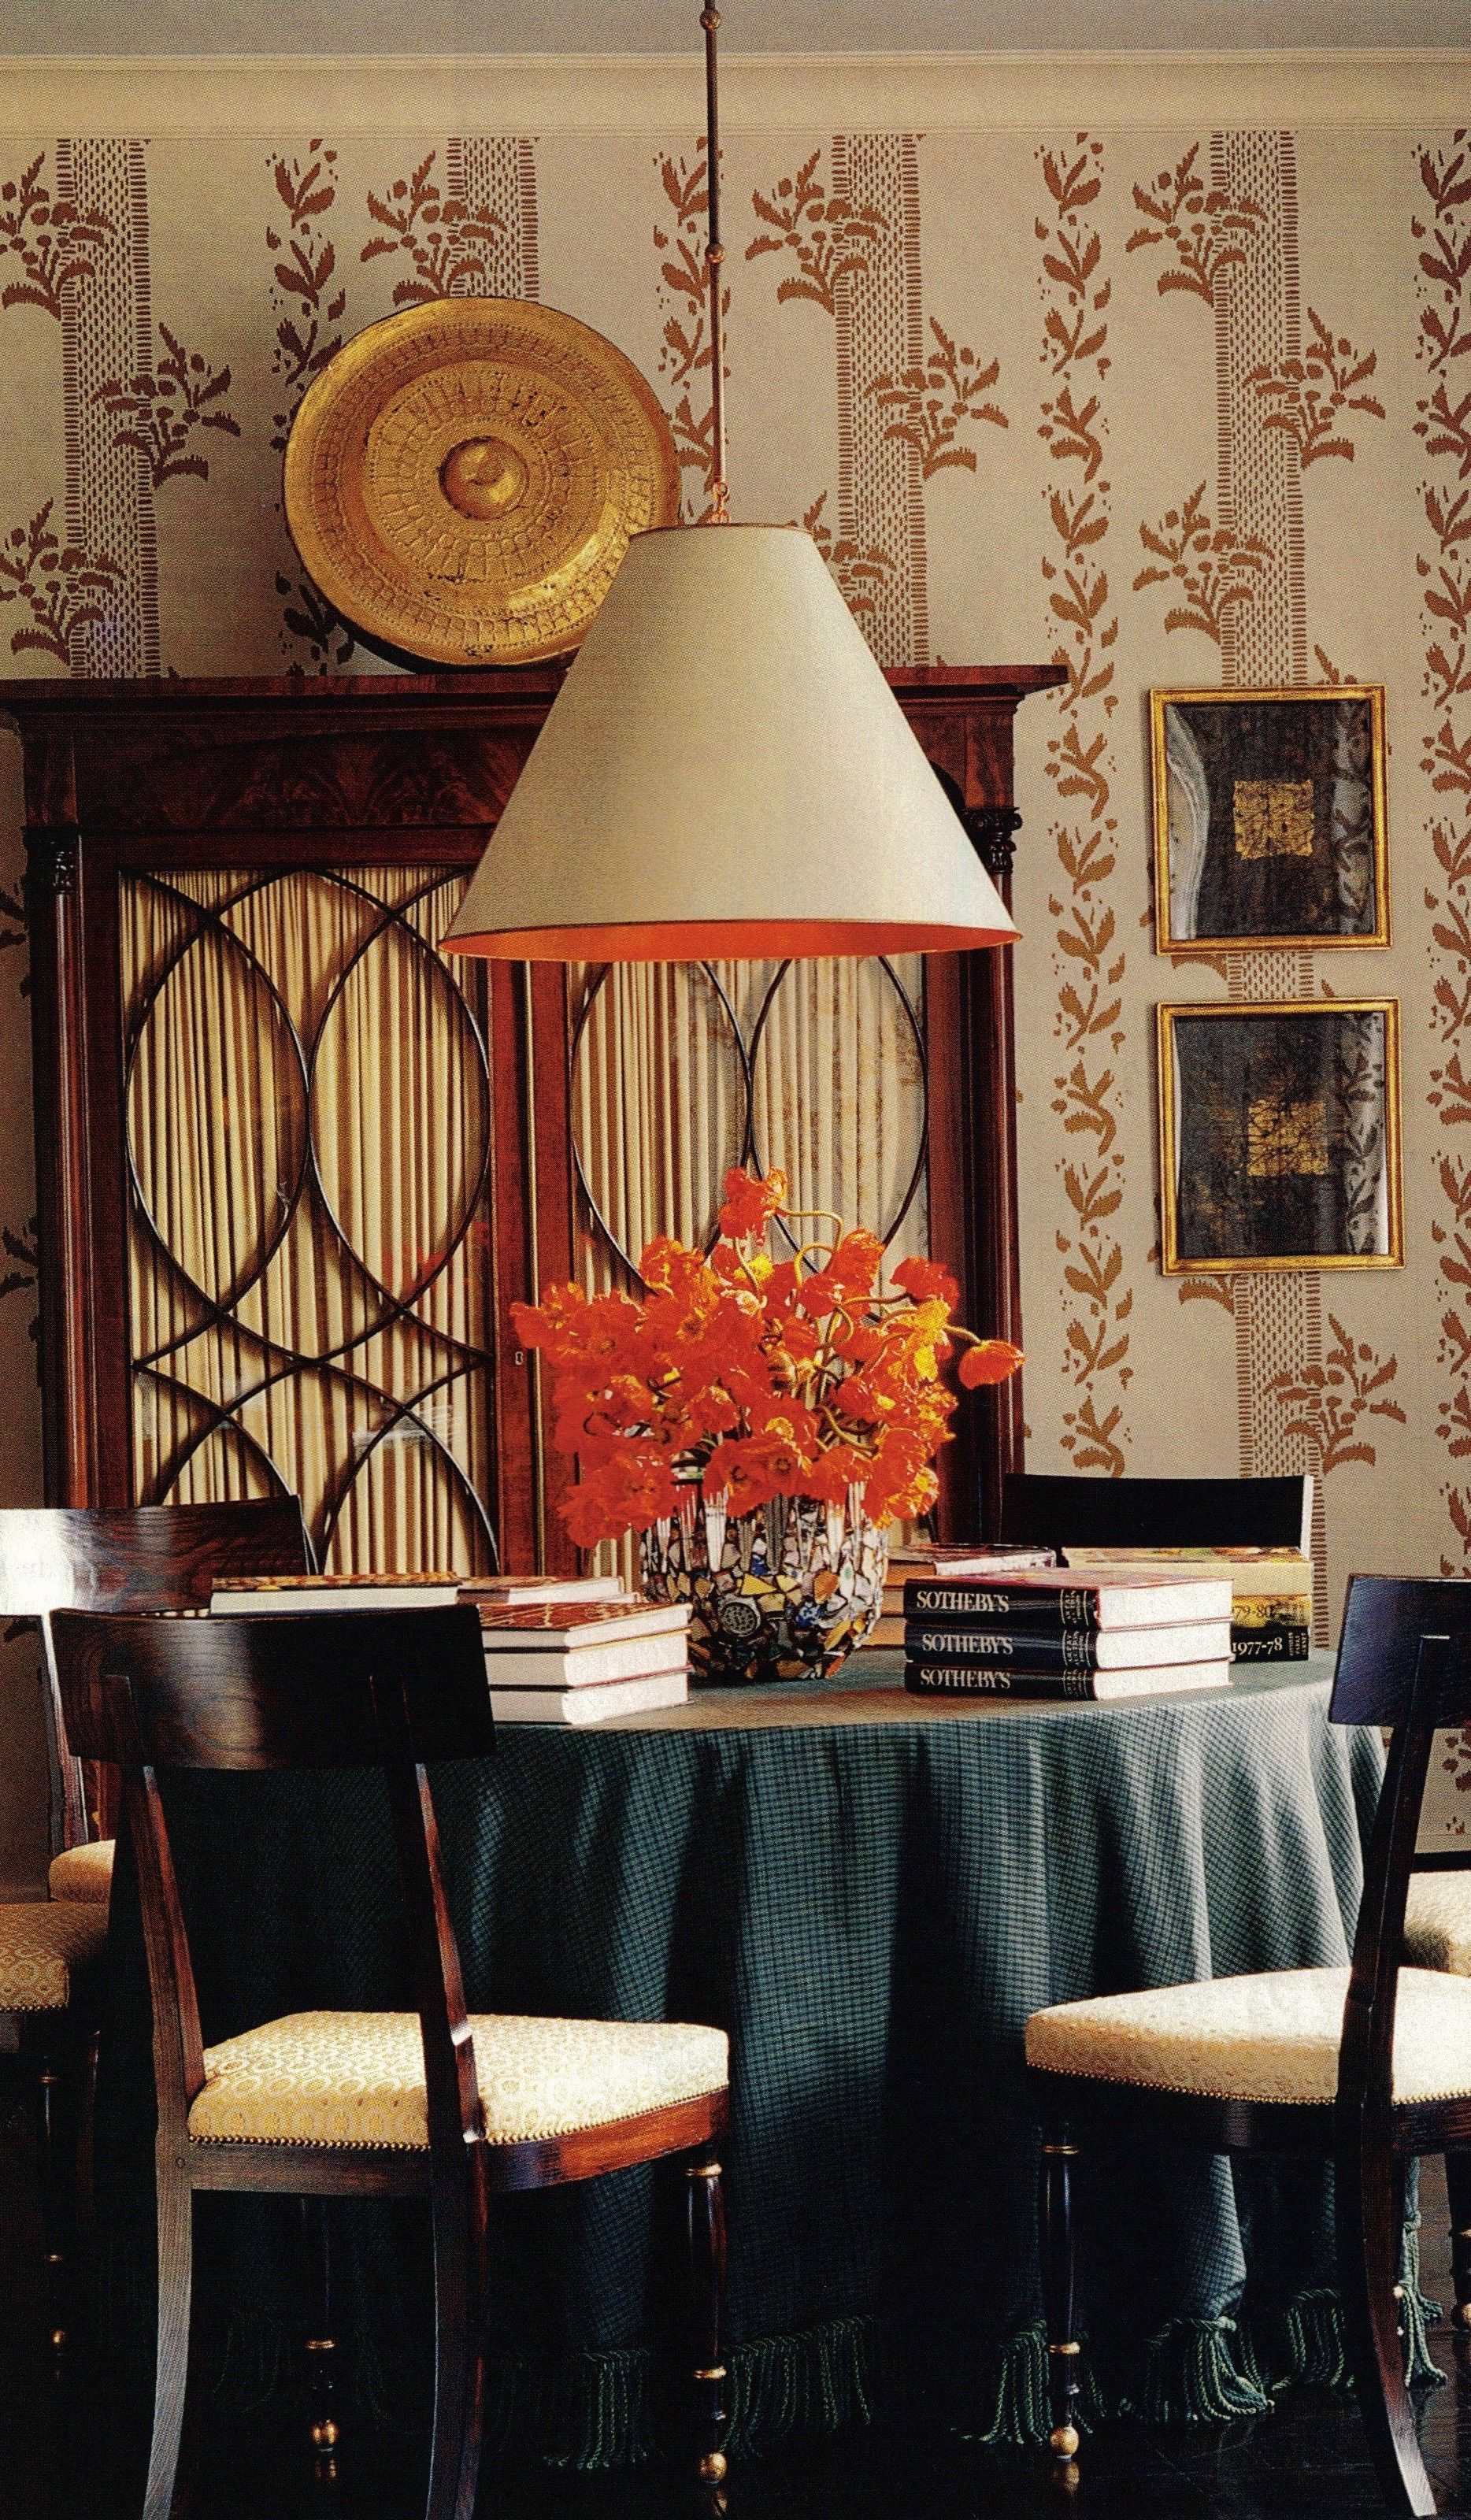 A dining room by Albert Hadley. It has a light blue ceiling, a favourite Hadley hue for the upper plane. The American Empire mahogany armoire is topped by a Tibetan gong. Next to them are two works on paper by Connecticut artist Mark Sciarillo, also a metalworker, who made the sculpted bronze base of the living room's coffee table. The vellum lampshade, the Eyelet gold-on-ivory wallpaper, and the chairs are all Hadley's designs. Fernando Bengoechega photography. House Beautiful